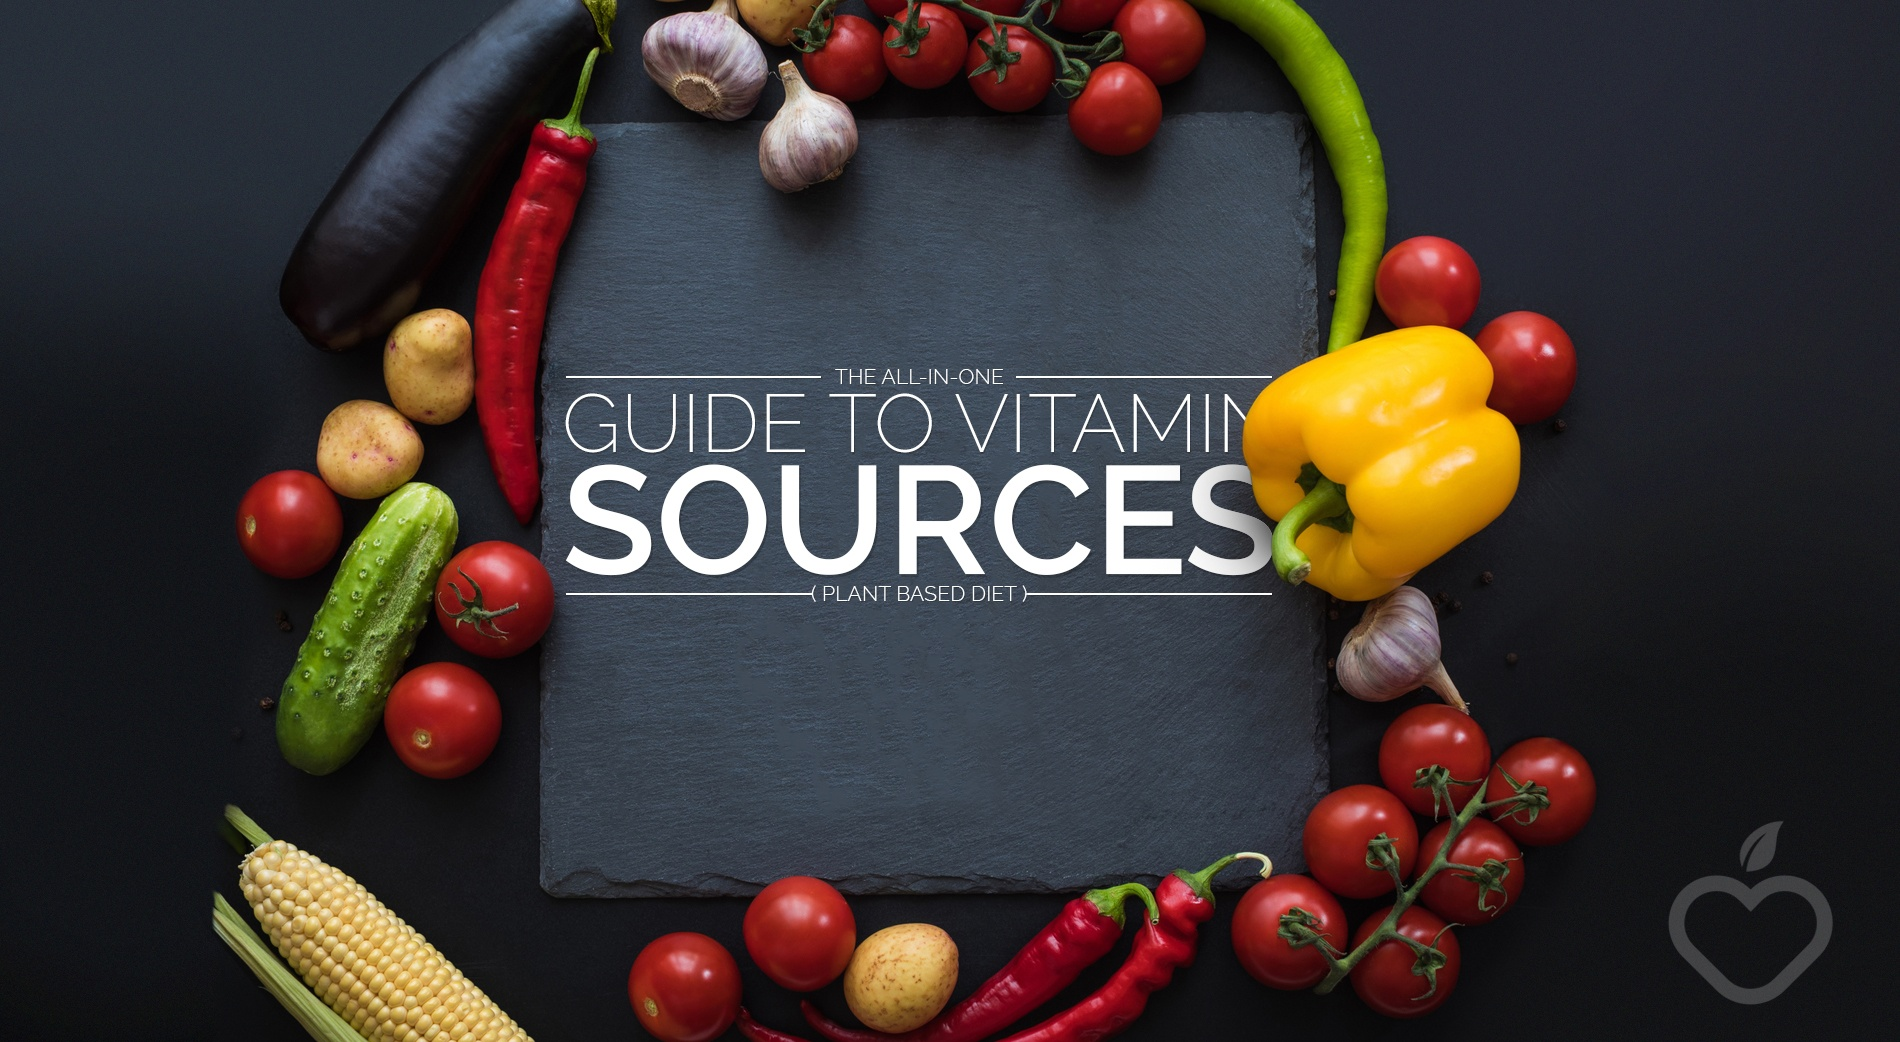 Vitamin Sources Image Design 1 - The All-In-One Guide To Vitamin Sources (Plant Based Diet)